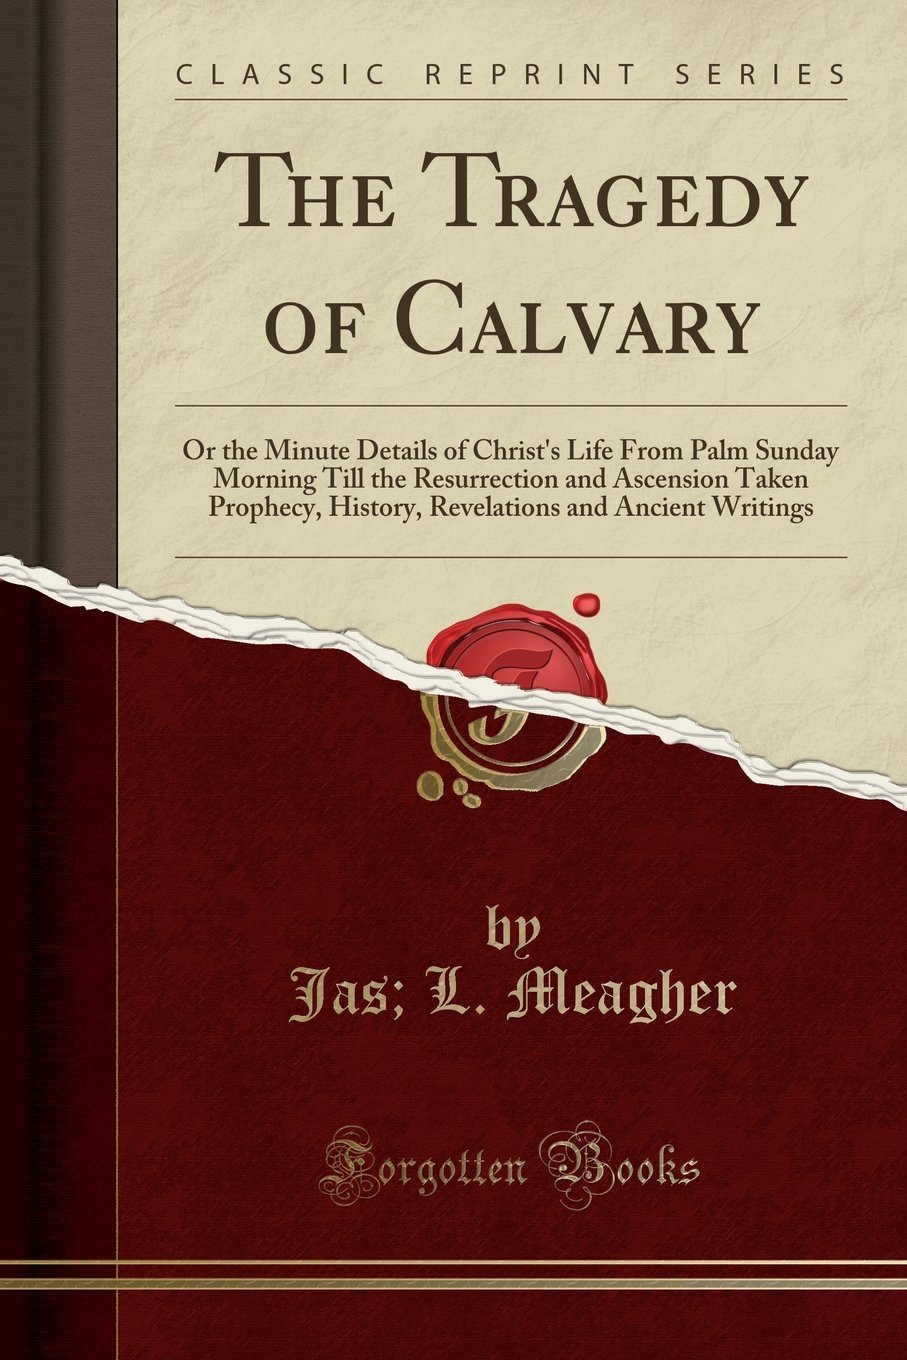 The Tragedy of Calvary: Or the Minute Details of Christ's Life From Palm Sunday Morning Till the Resurrection and Ascension Taken Prophecy, History, Revelations and Ancient Writings (Classic Reprint) pdf epub